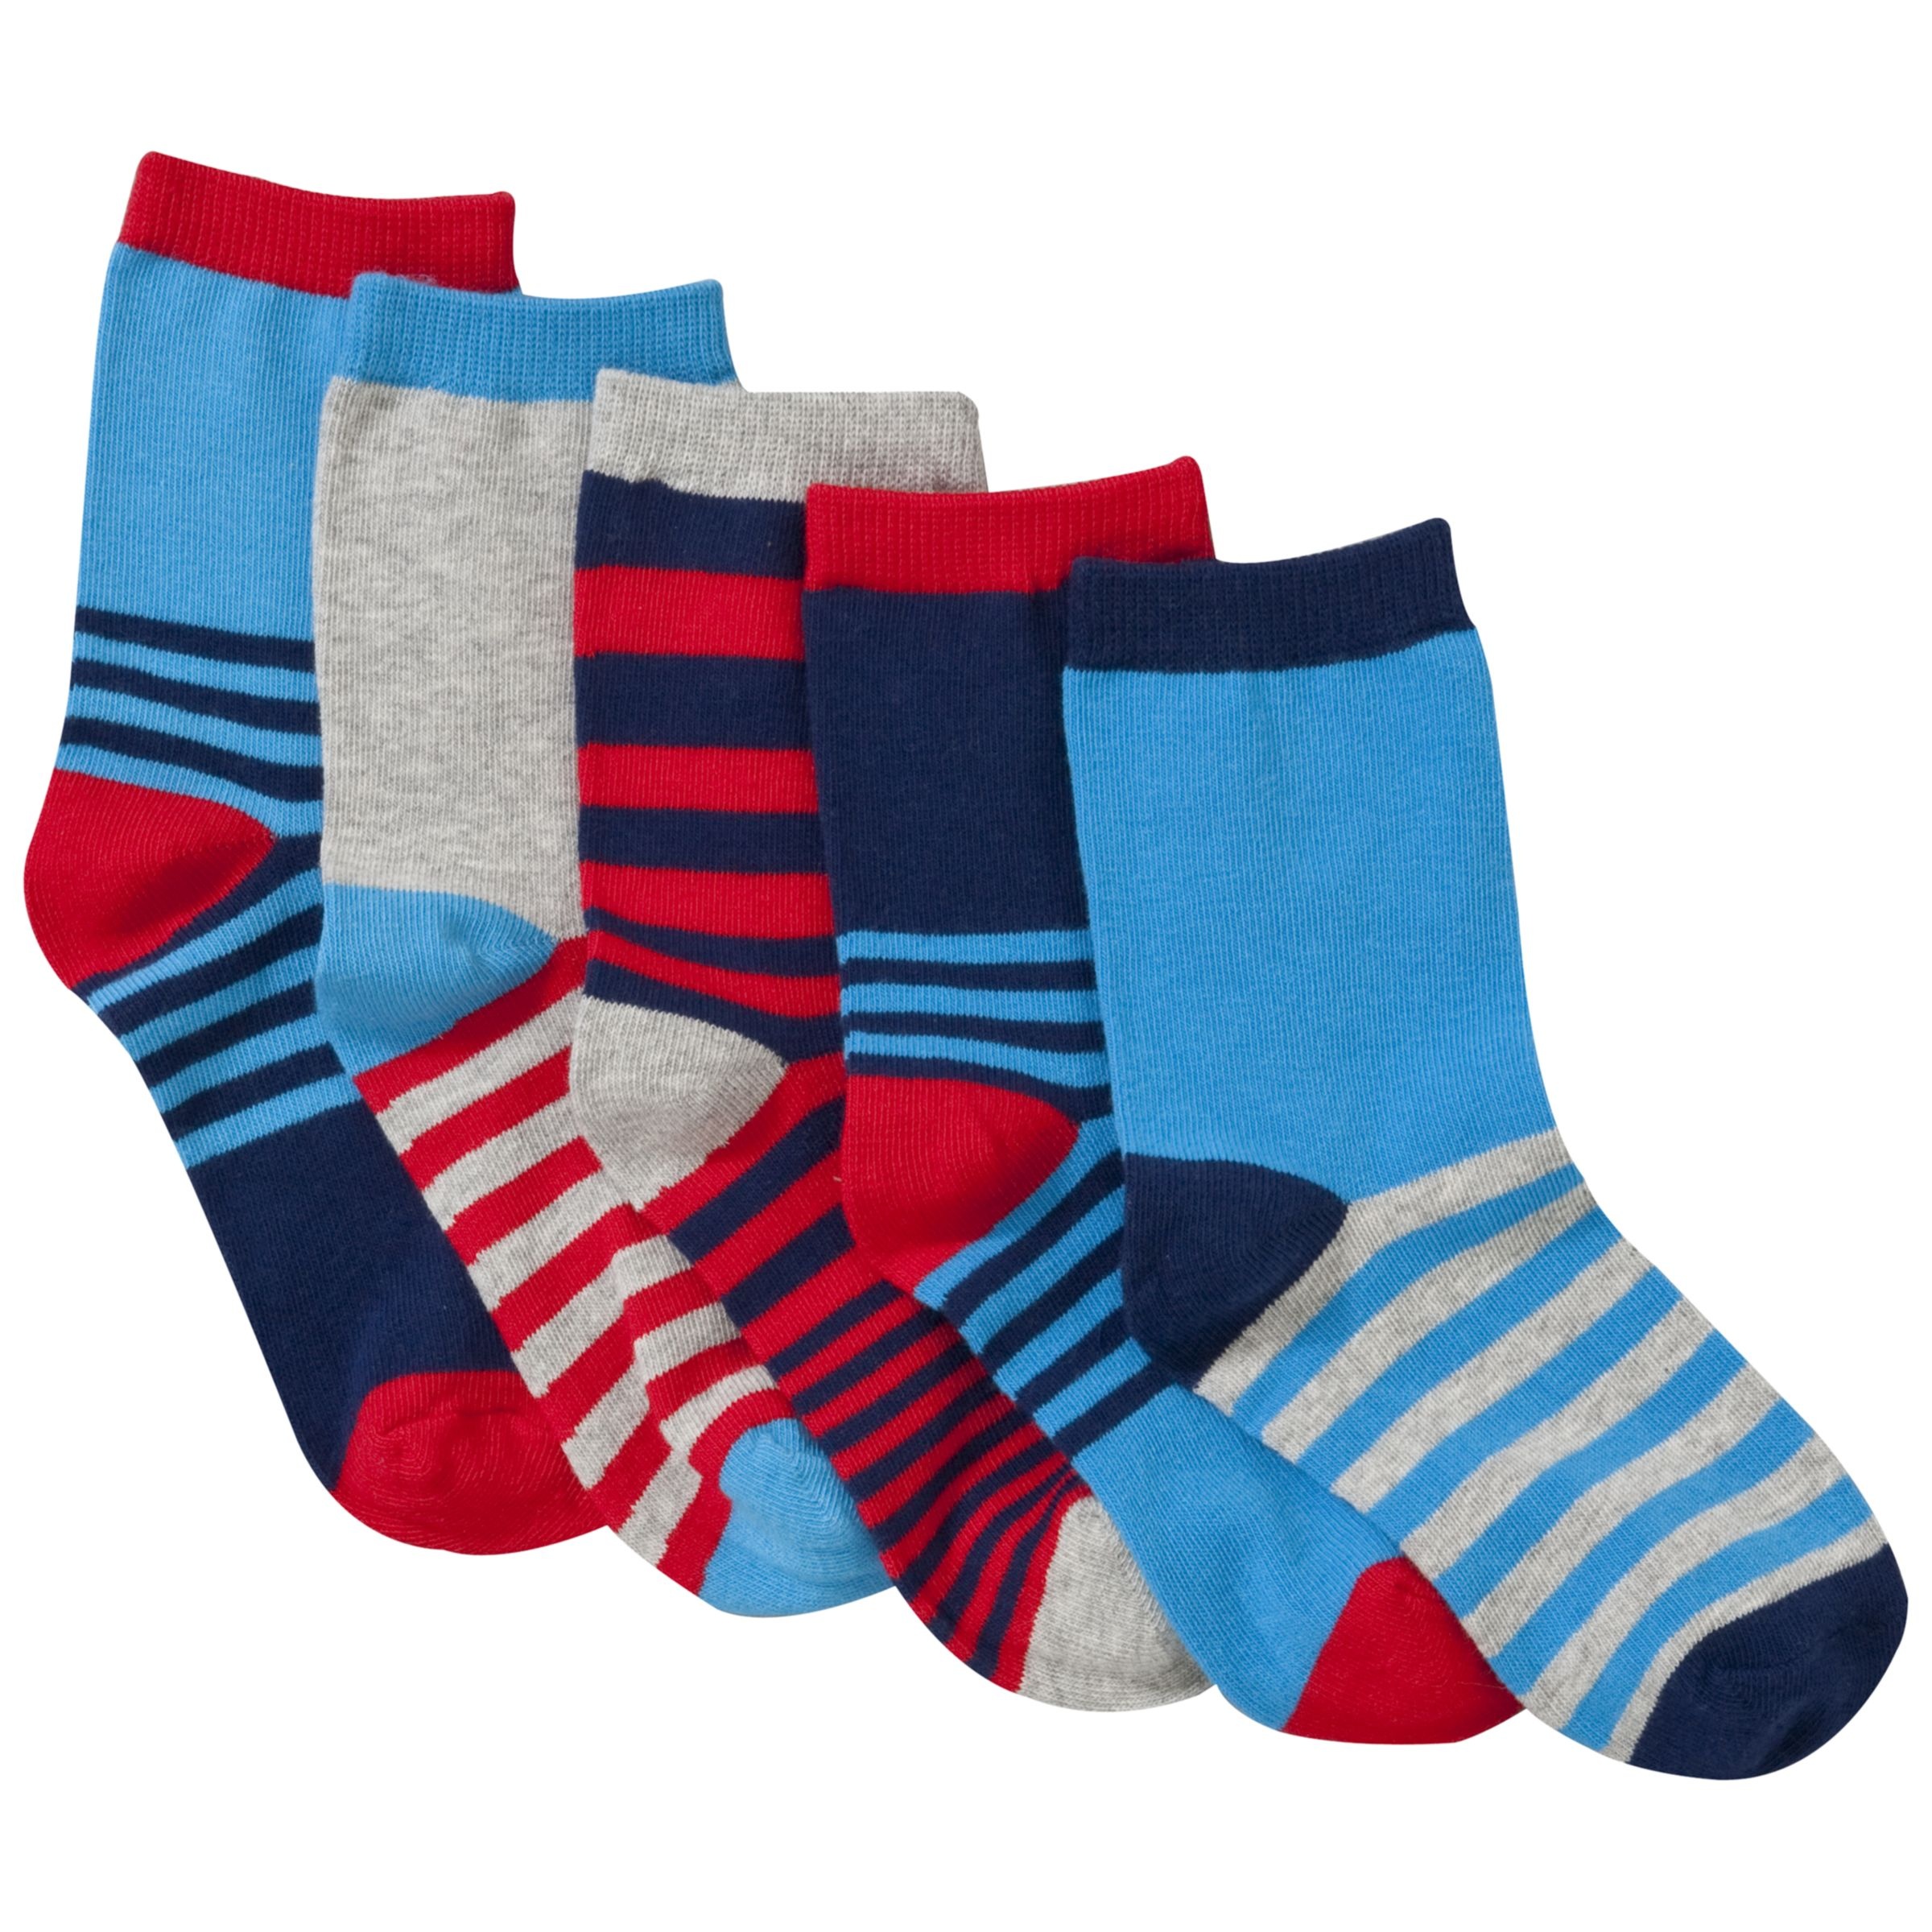 John Lewis Boy Bright Socks, Pack of 5, Nautical